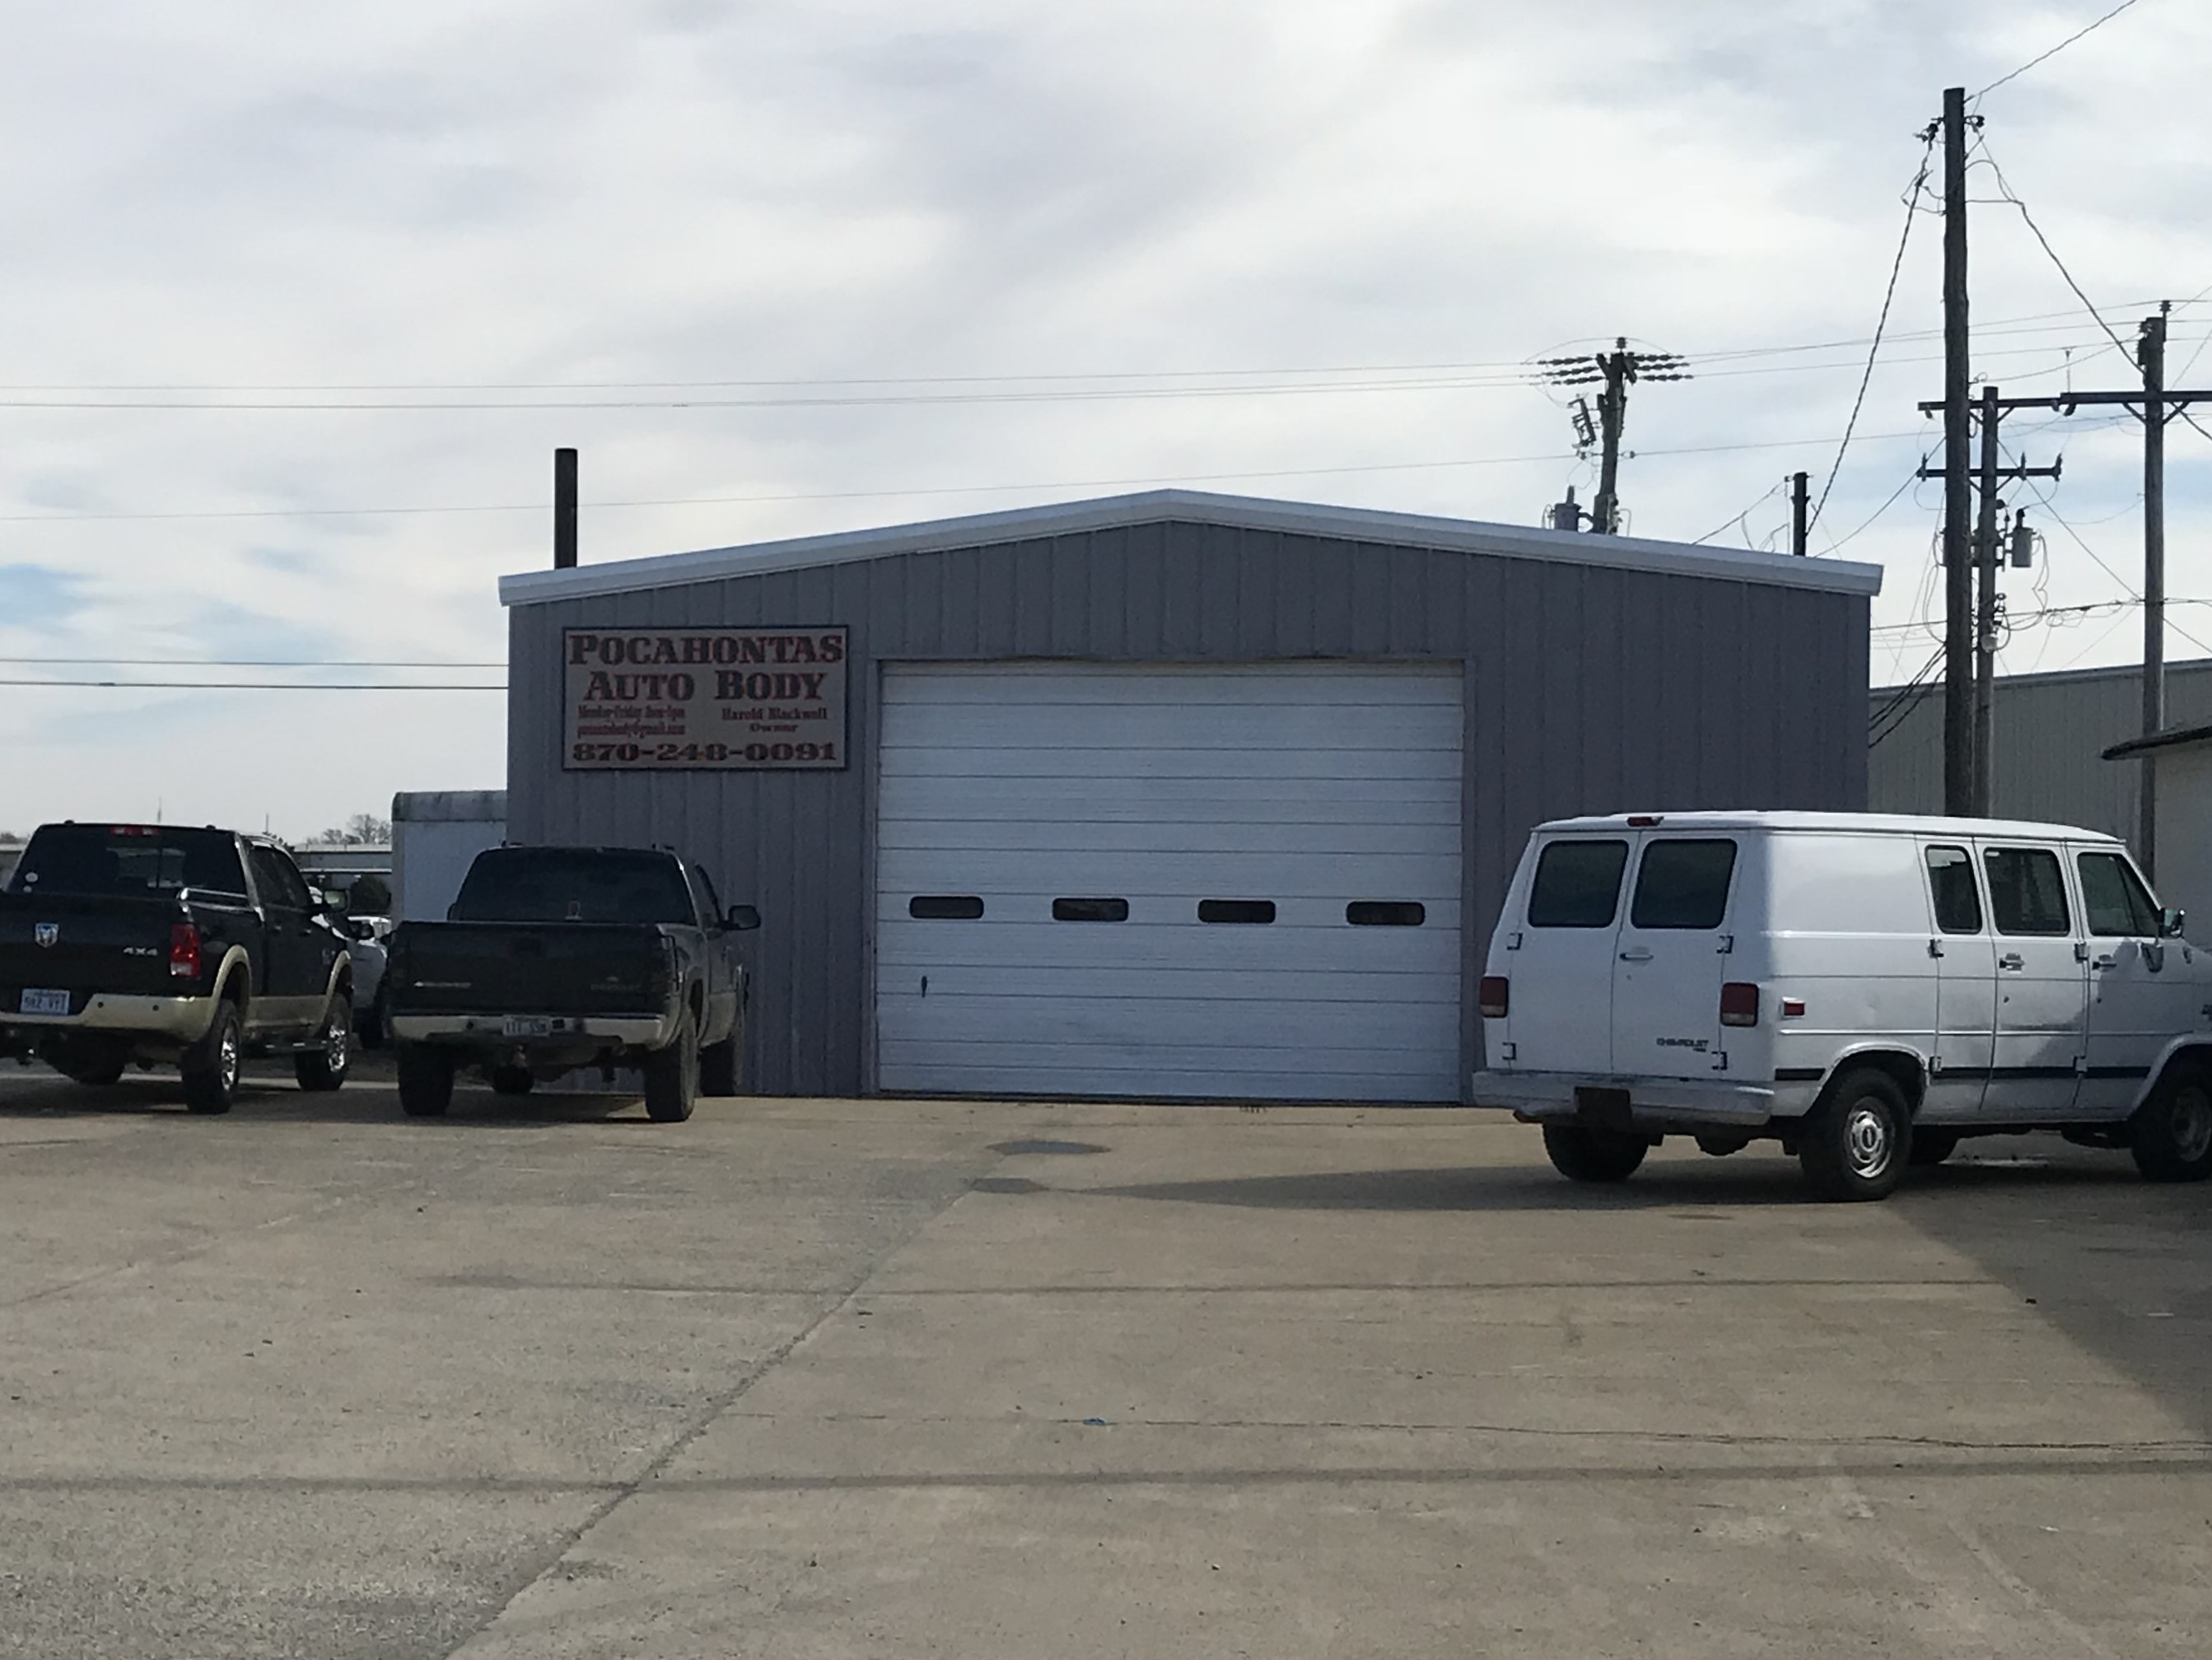 BODY SHOPS IN POCAHONTAS, AR